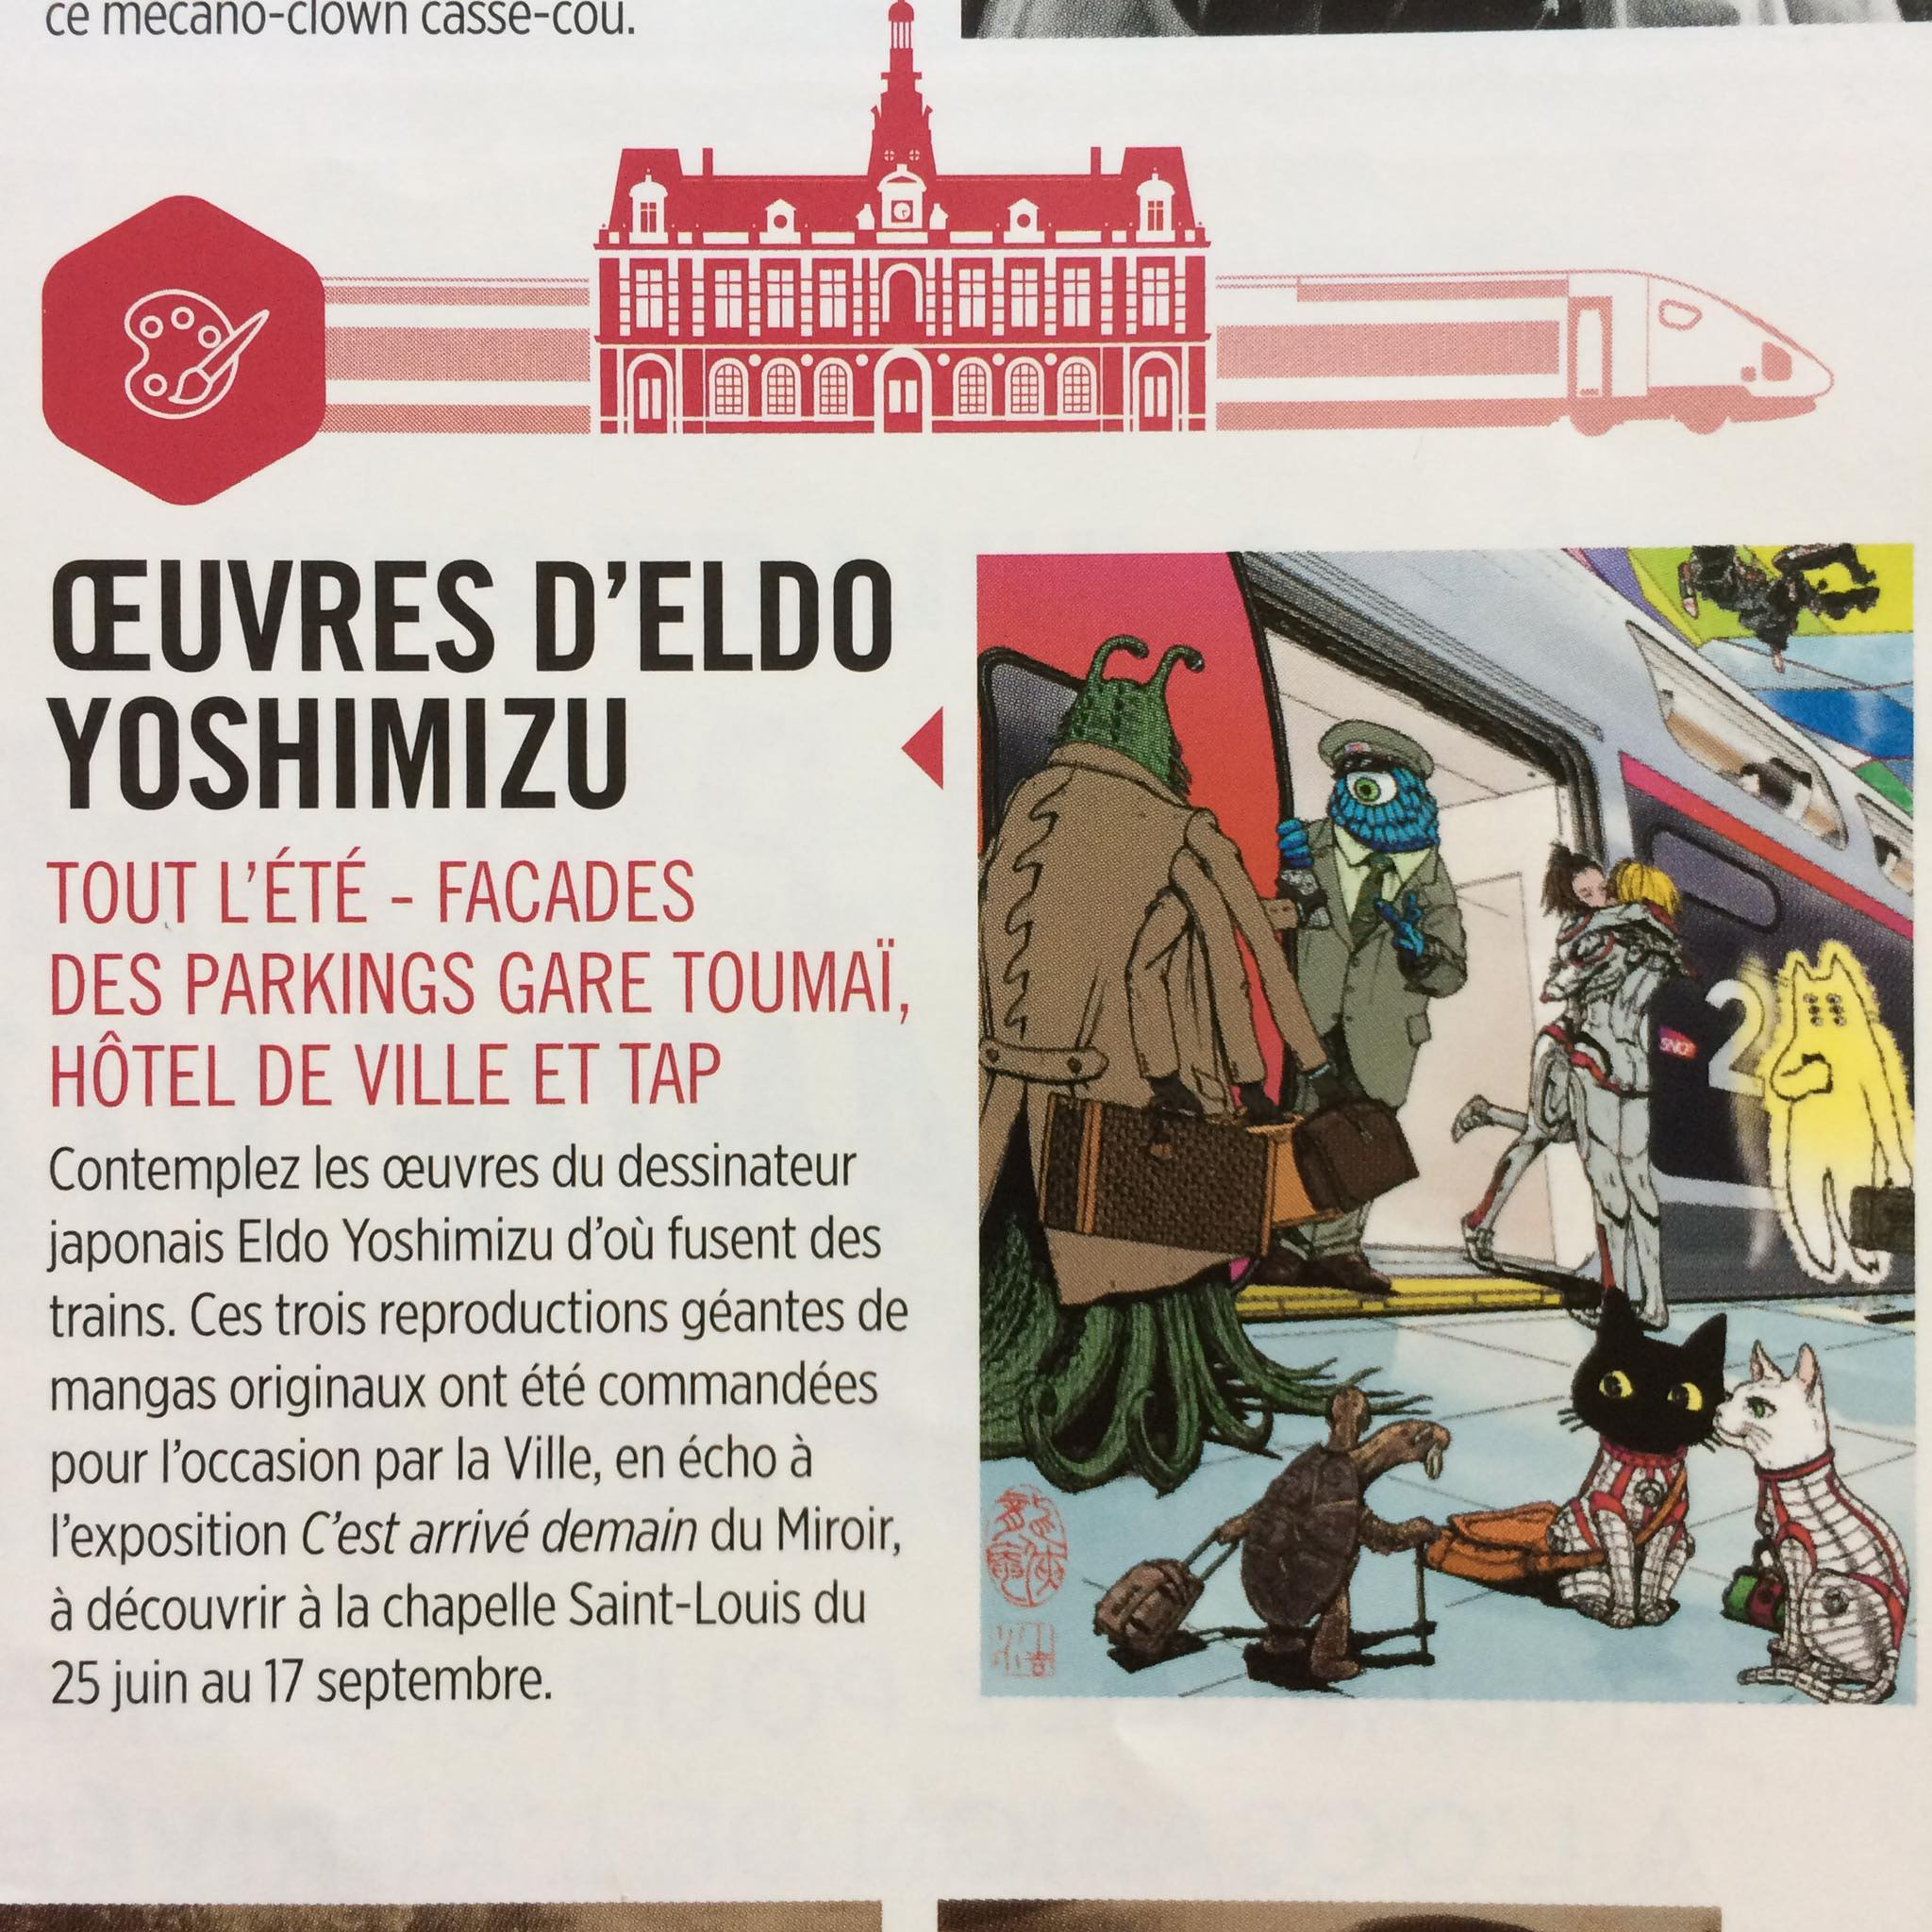 Art work for Poitiers and TGV.